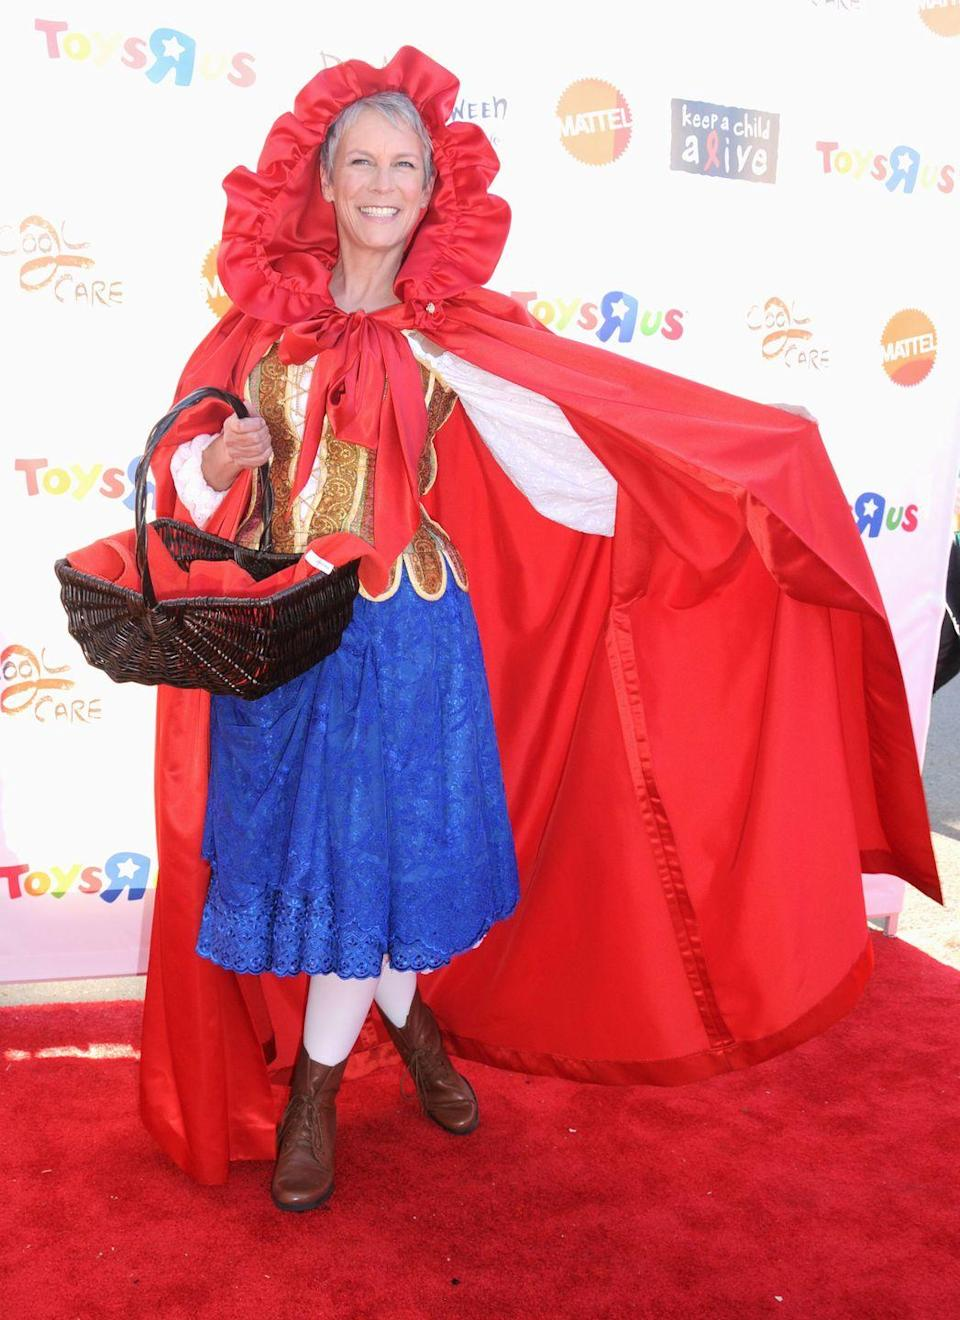 <p>Who knew the path to grandma's included a red carpet? The actress's costume was spot-0n and adorable when she attended a 2011 Halloween event in LA. </p>